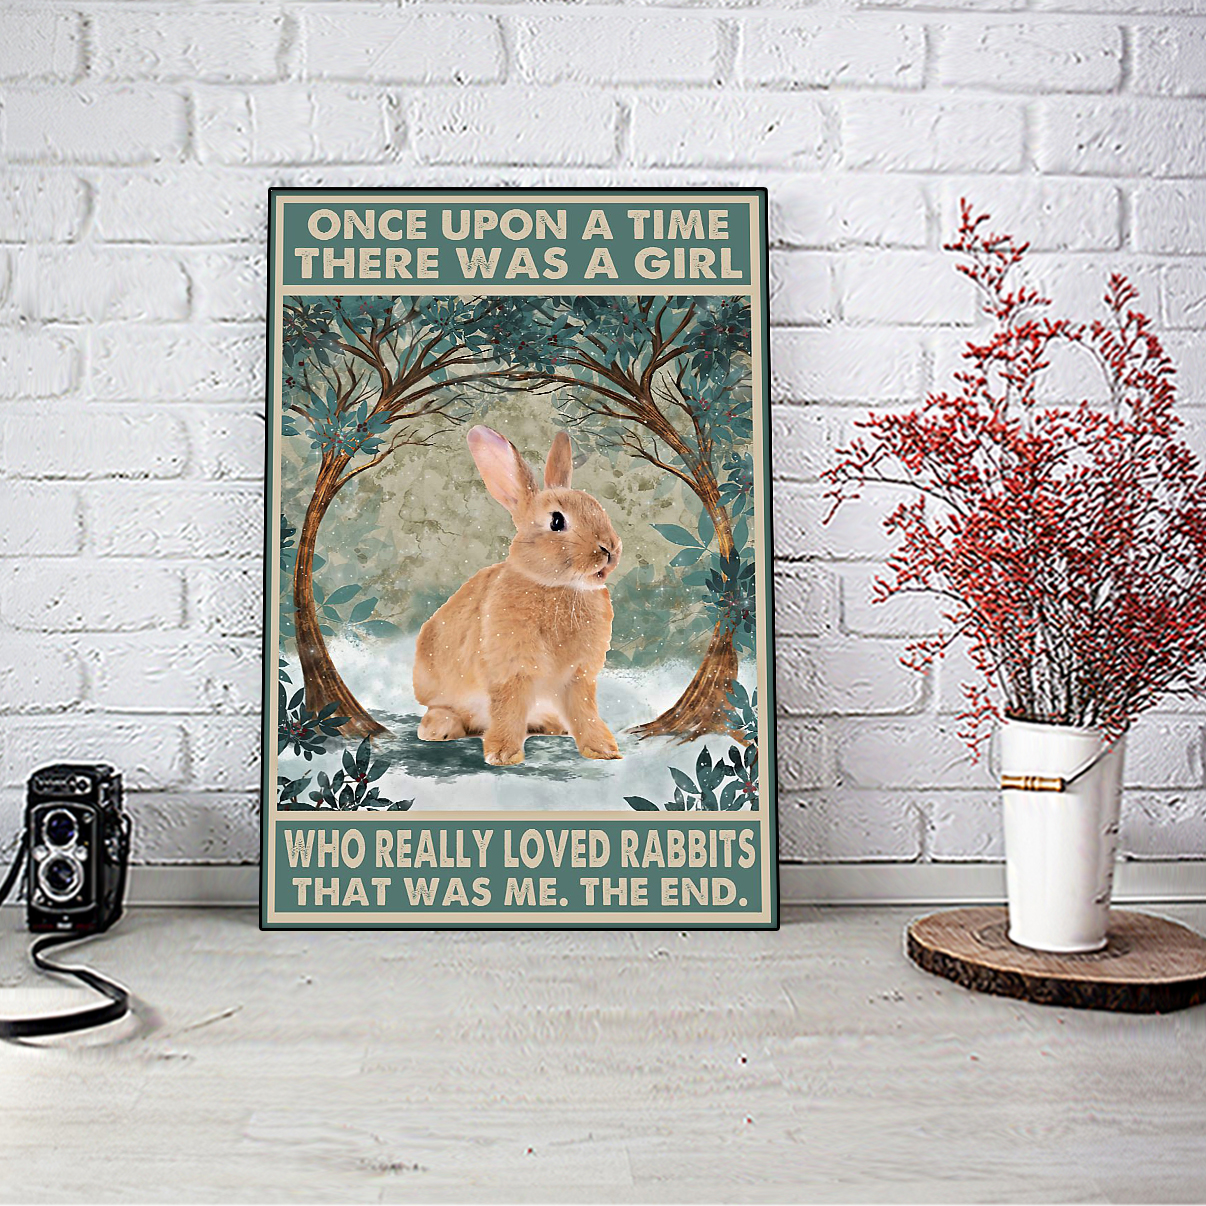 Rabbit once upon a time there was a girl who really loved rabbits poster A3